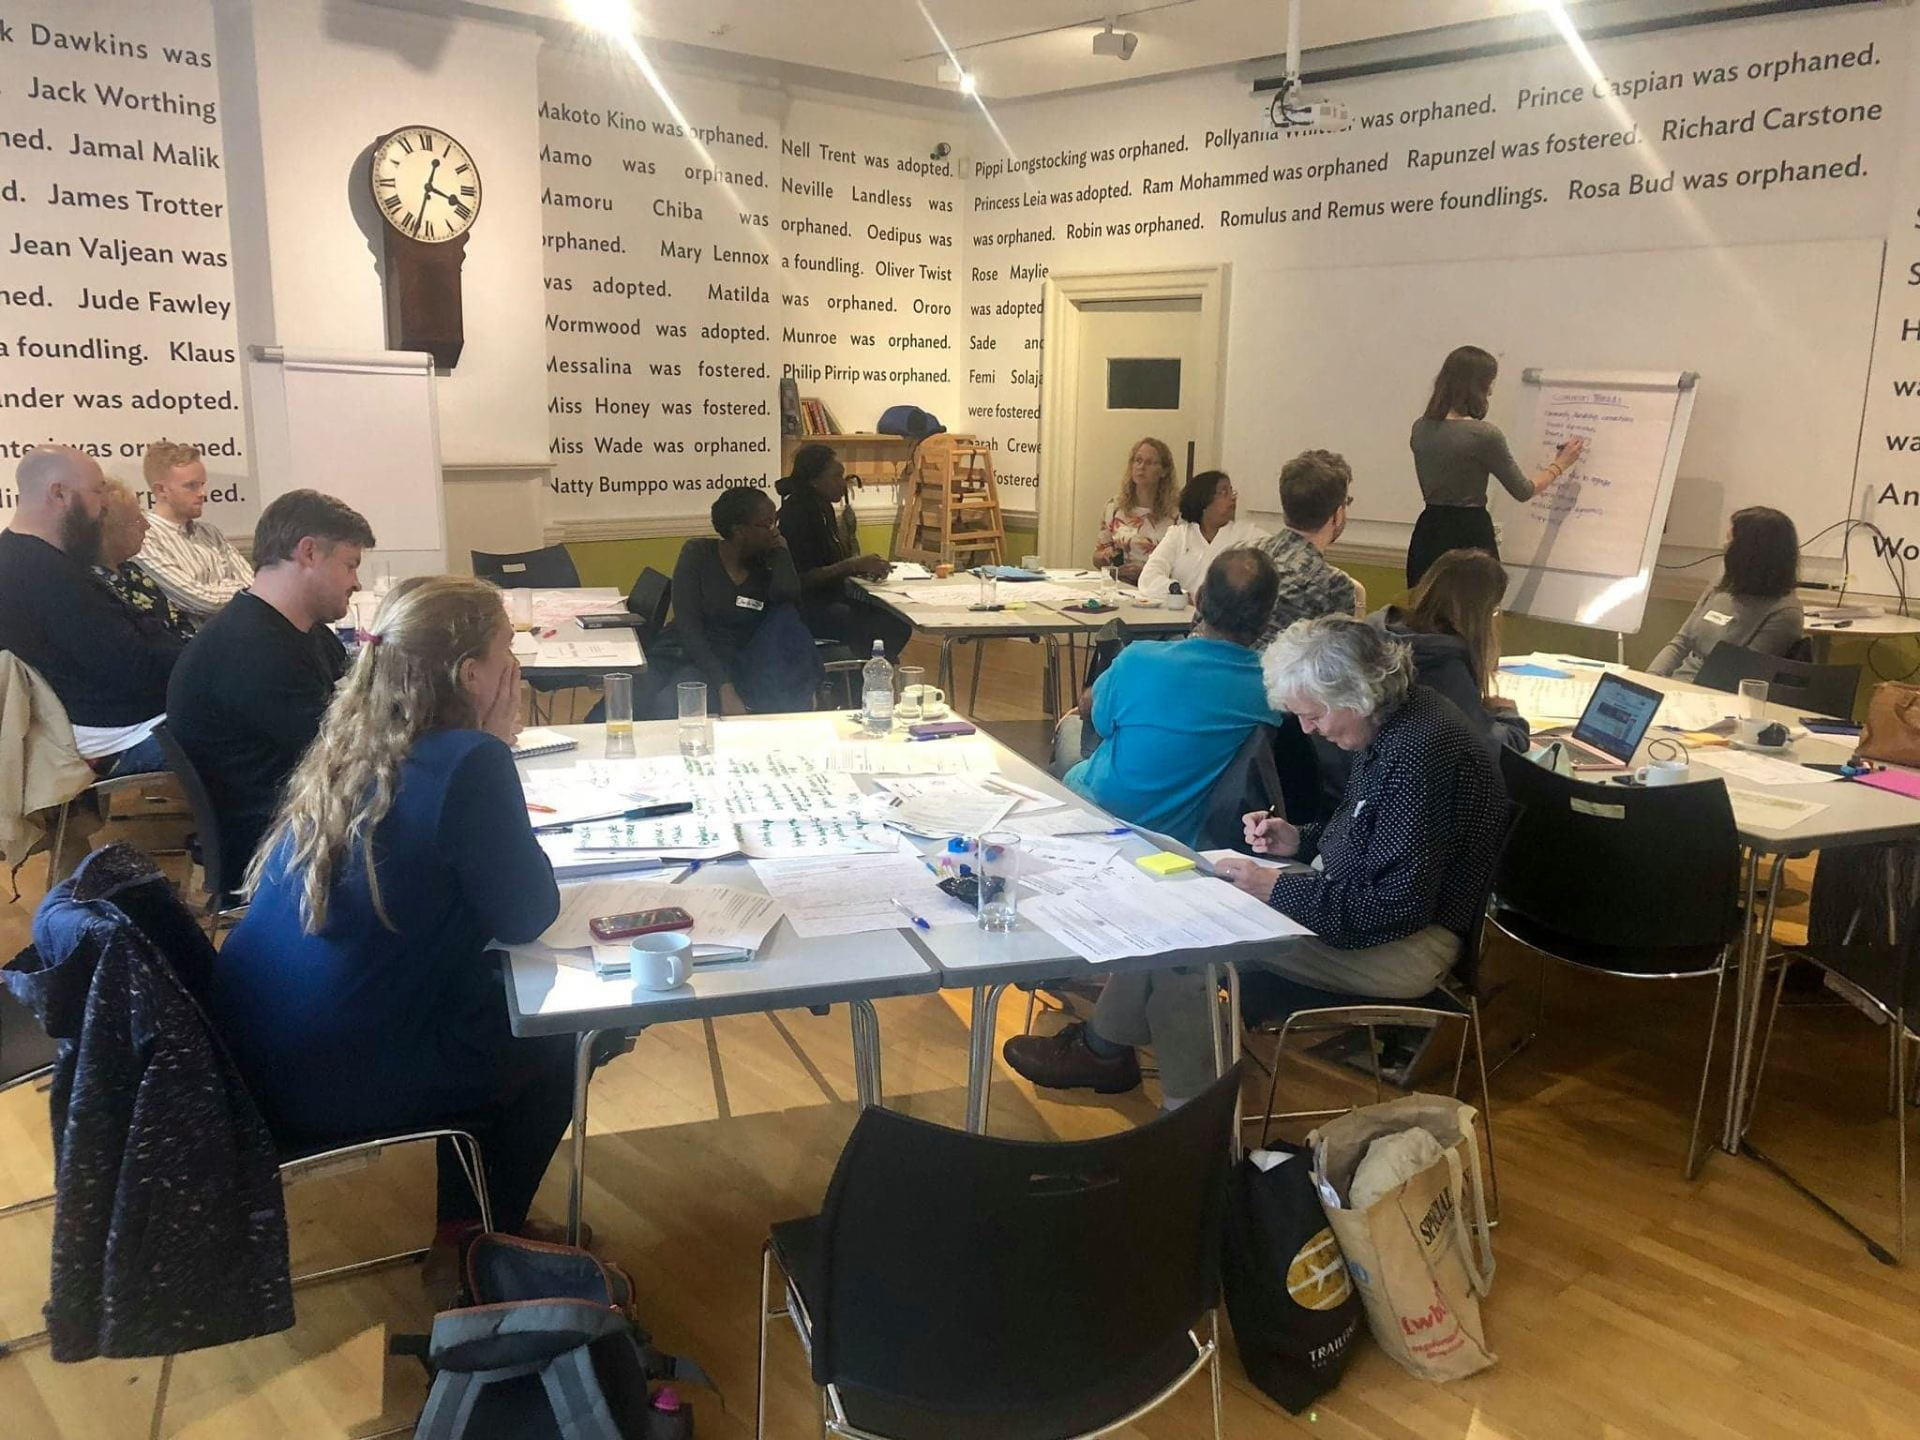 Co-creators sharing stories and experiences as part of our evaluation co-creation last week